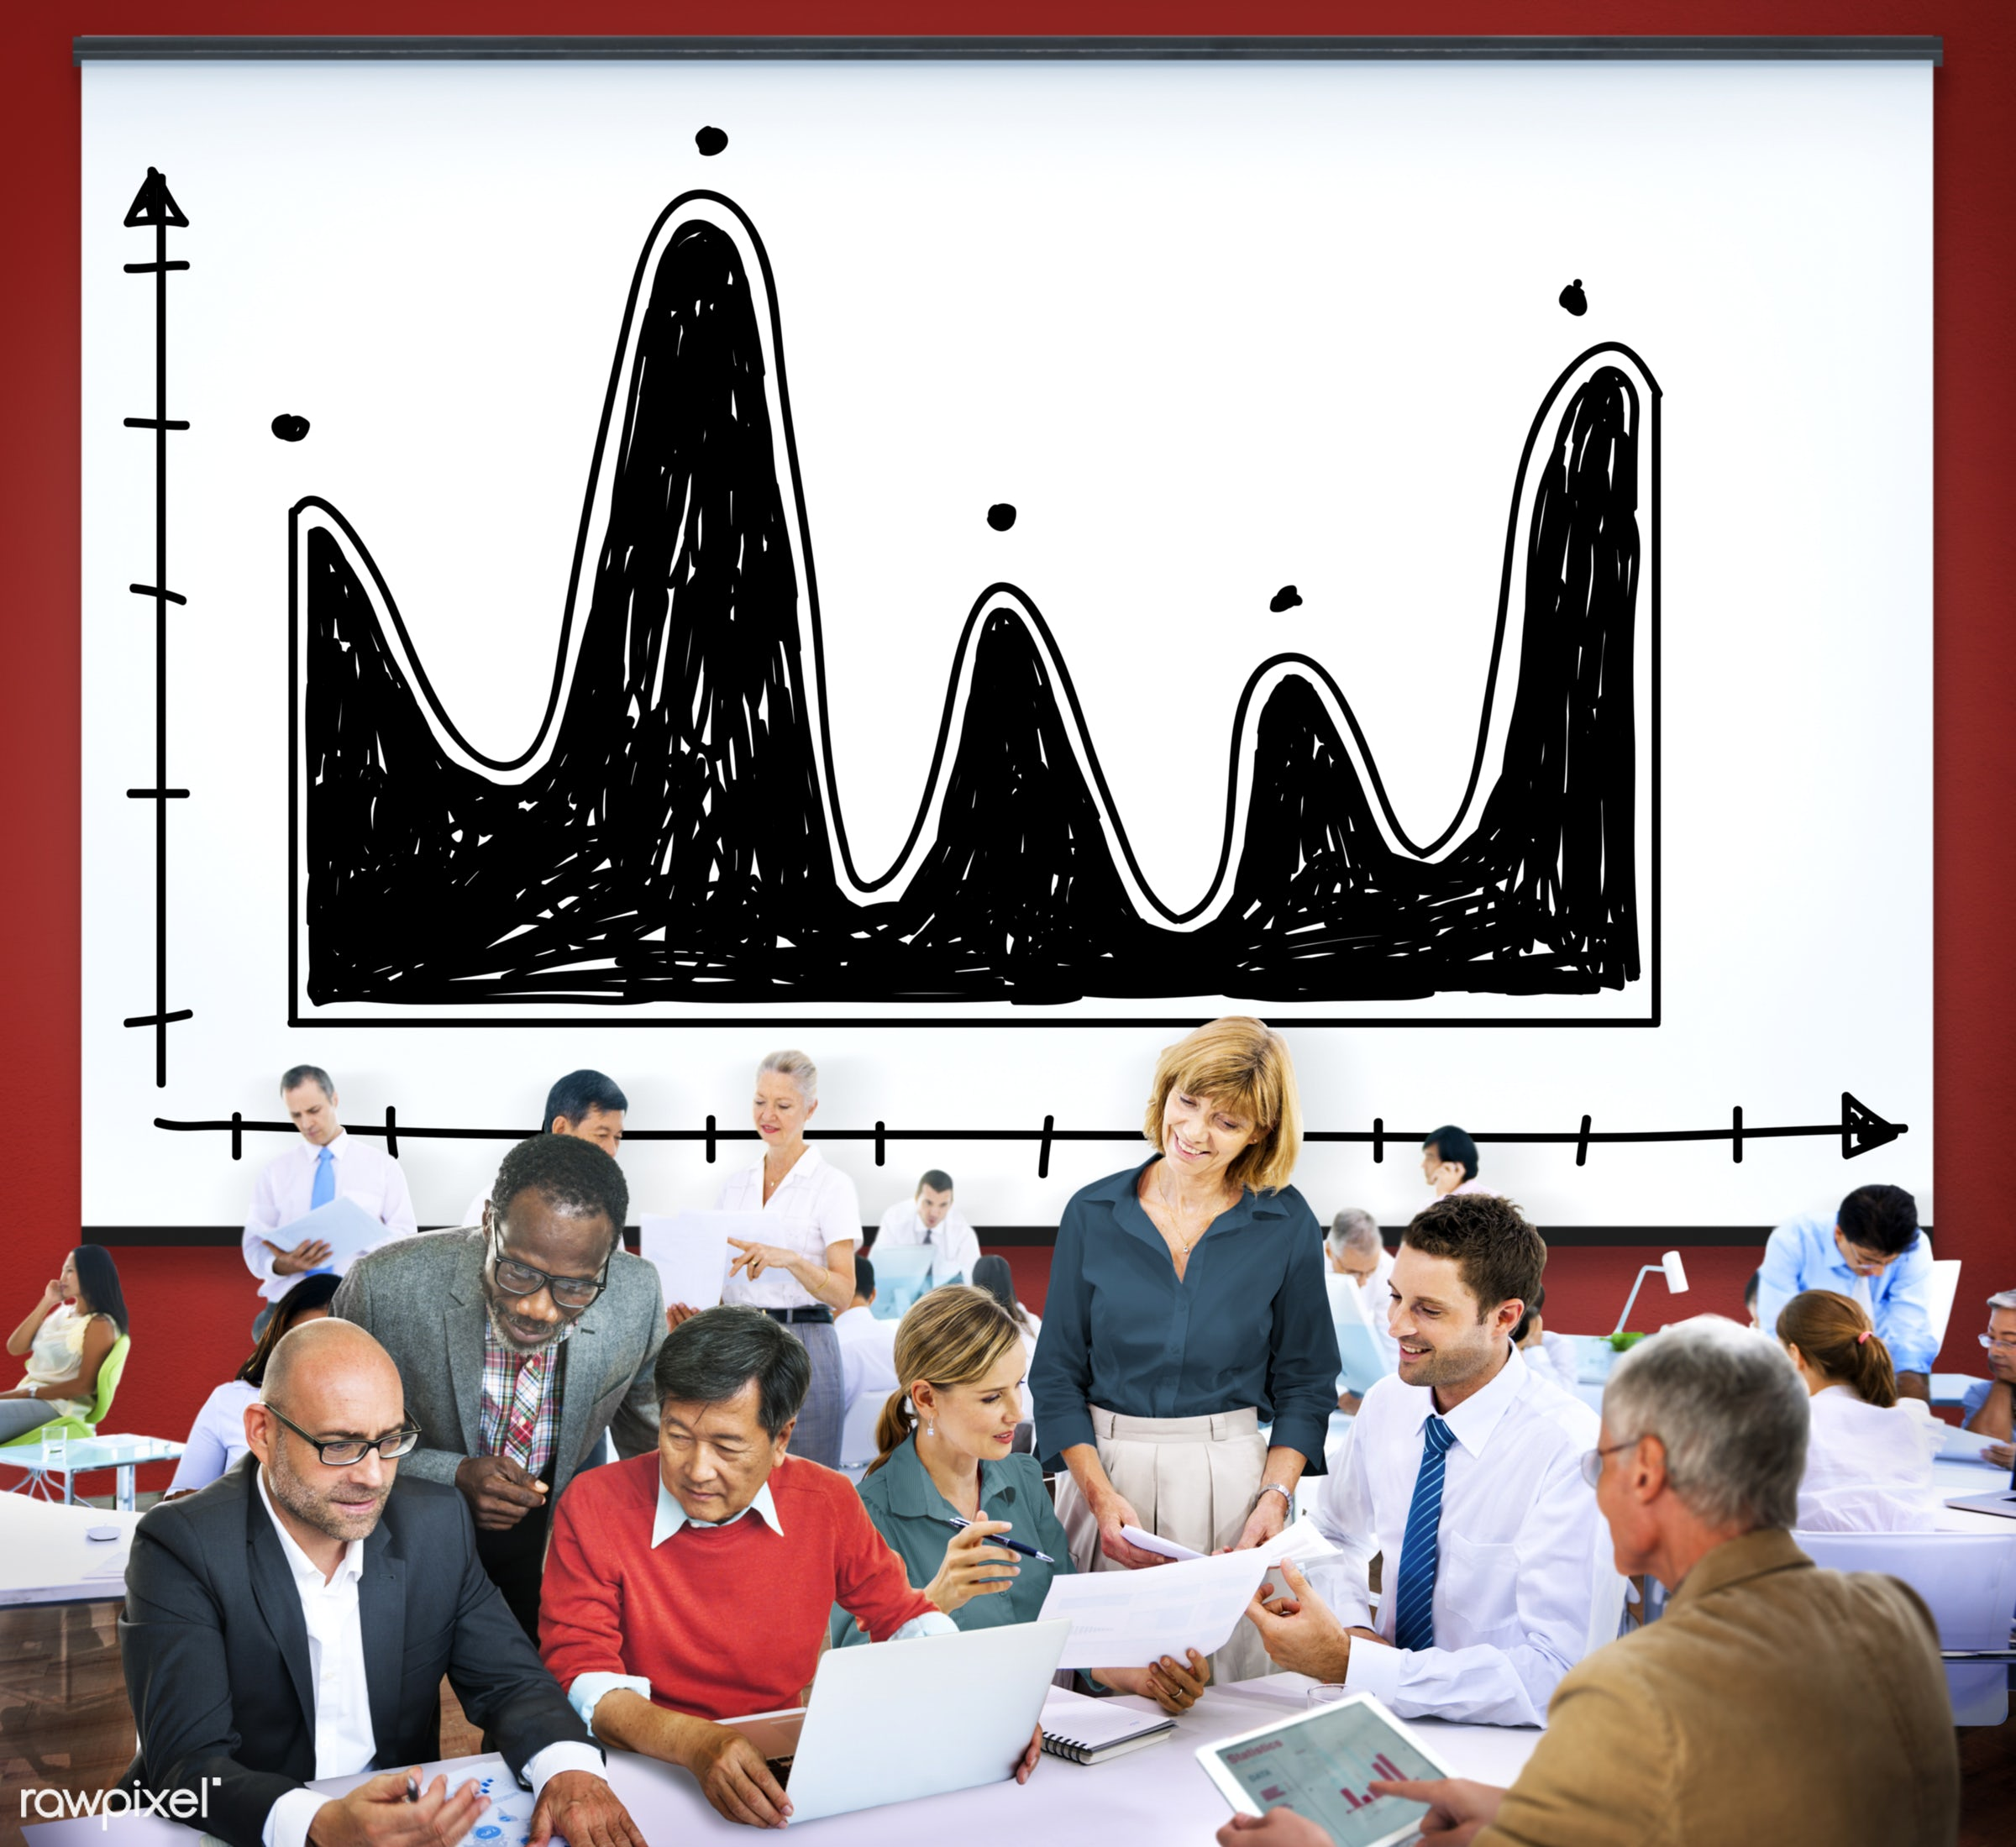 analysis, axis, business, business people, businessmen, businesswomen, busy, communication, conversation, corporate, curve,...